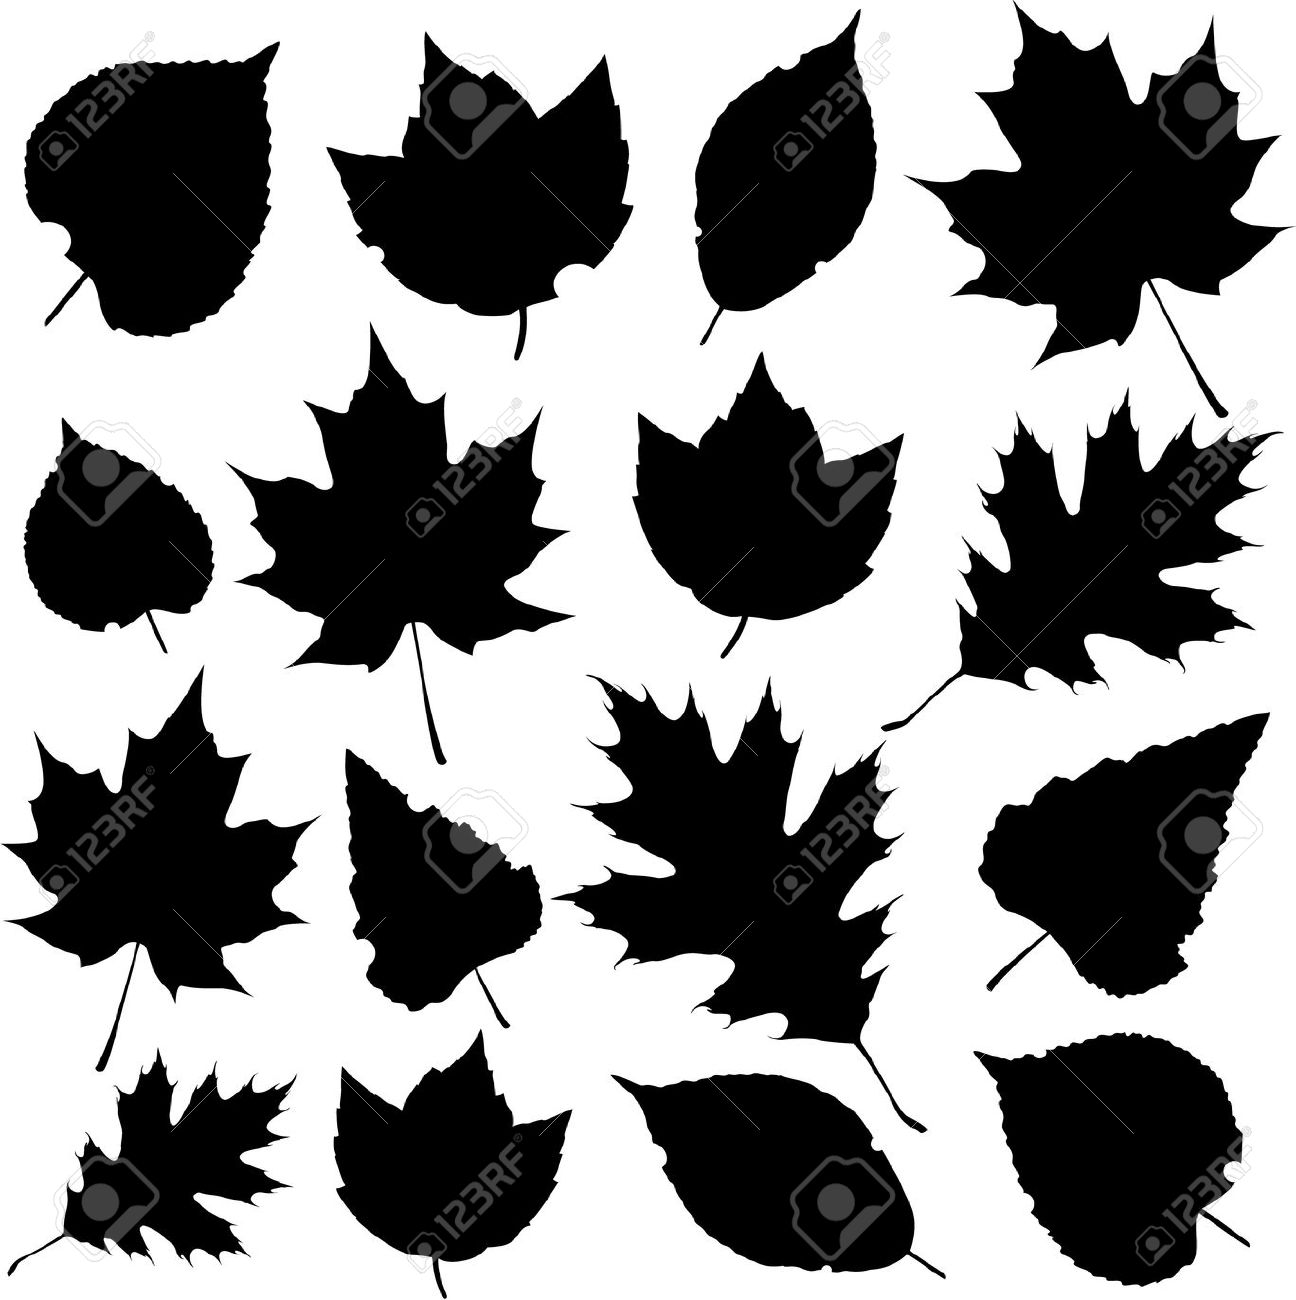 Leaf Silhouettes Royalty Free Cliparts, Vectors, And Stock.